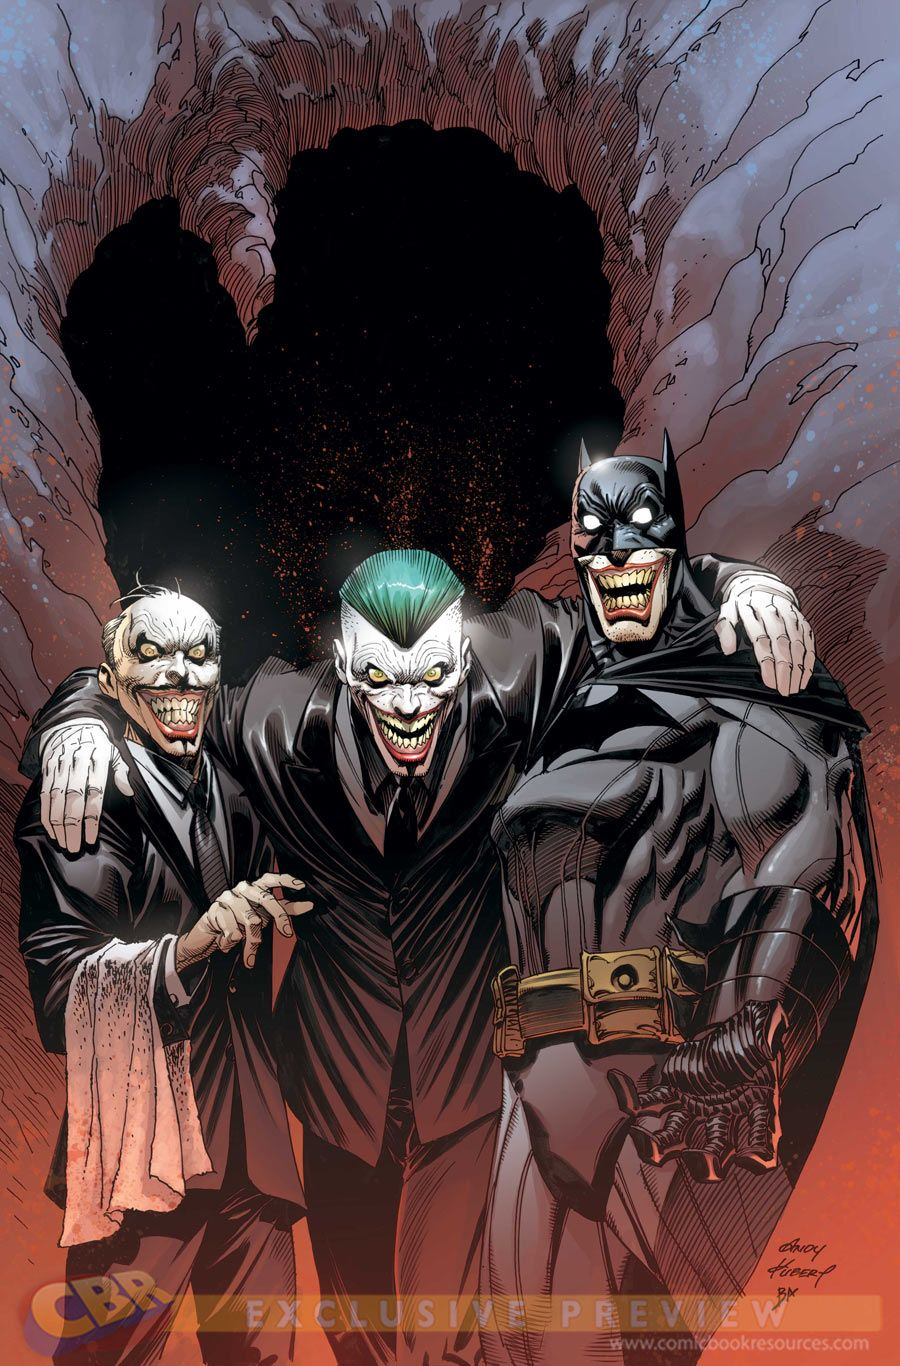 """Images for : EXCLUSIVE: Andy Kubert's """"Batman"""" #40 Cover and More From DC Comics - Comic Book Resources"""